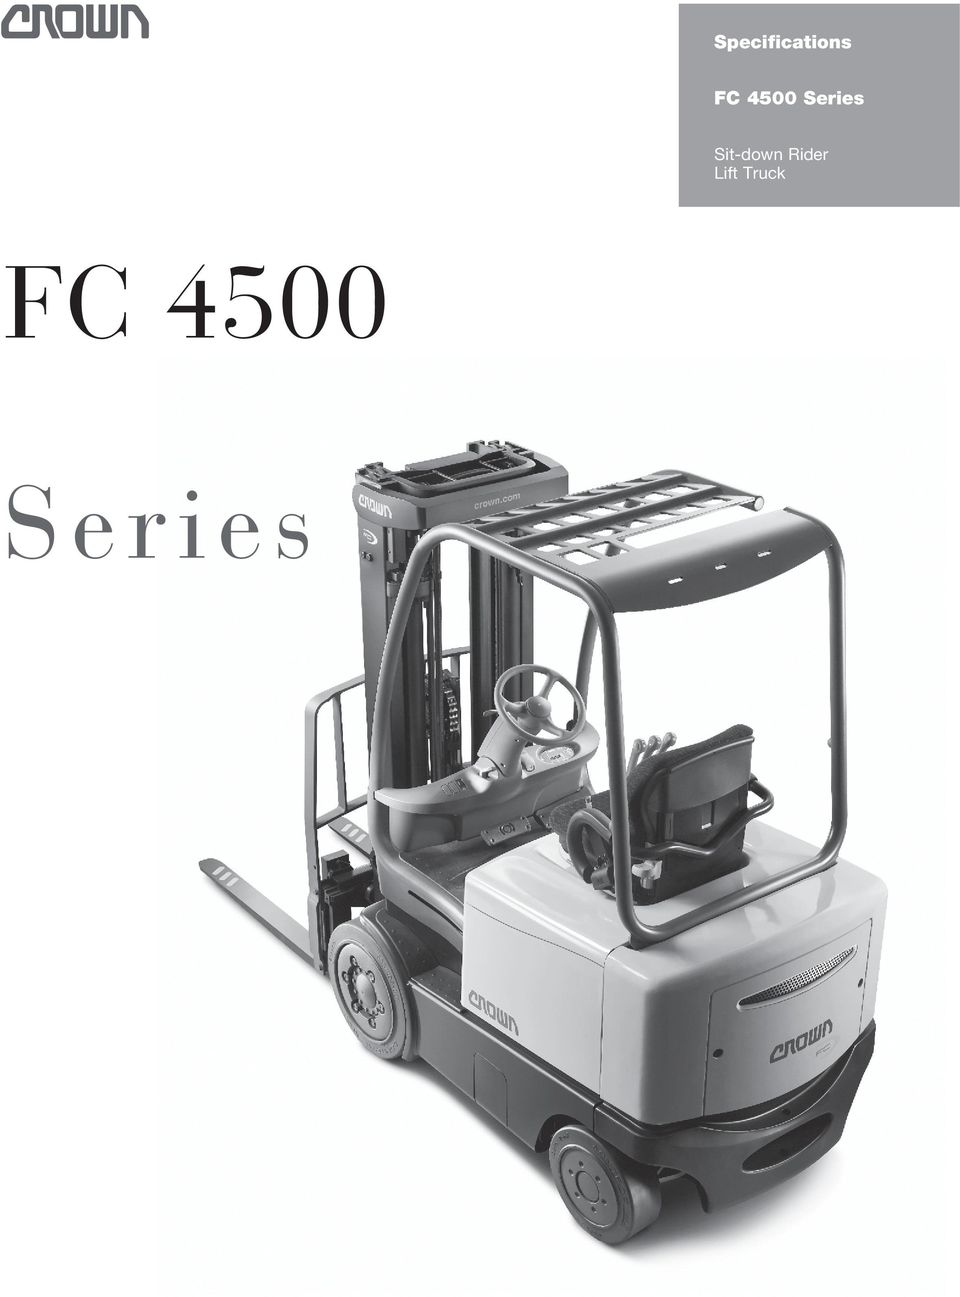 Specifications Fc 4500 Series Sit Down Rider Lift Truck Yale Mpb040 E Wiring Diagram Transcription